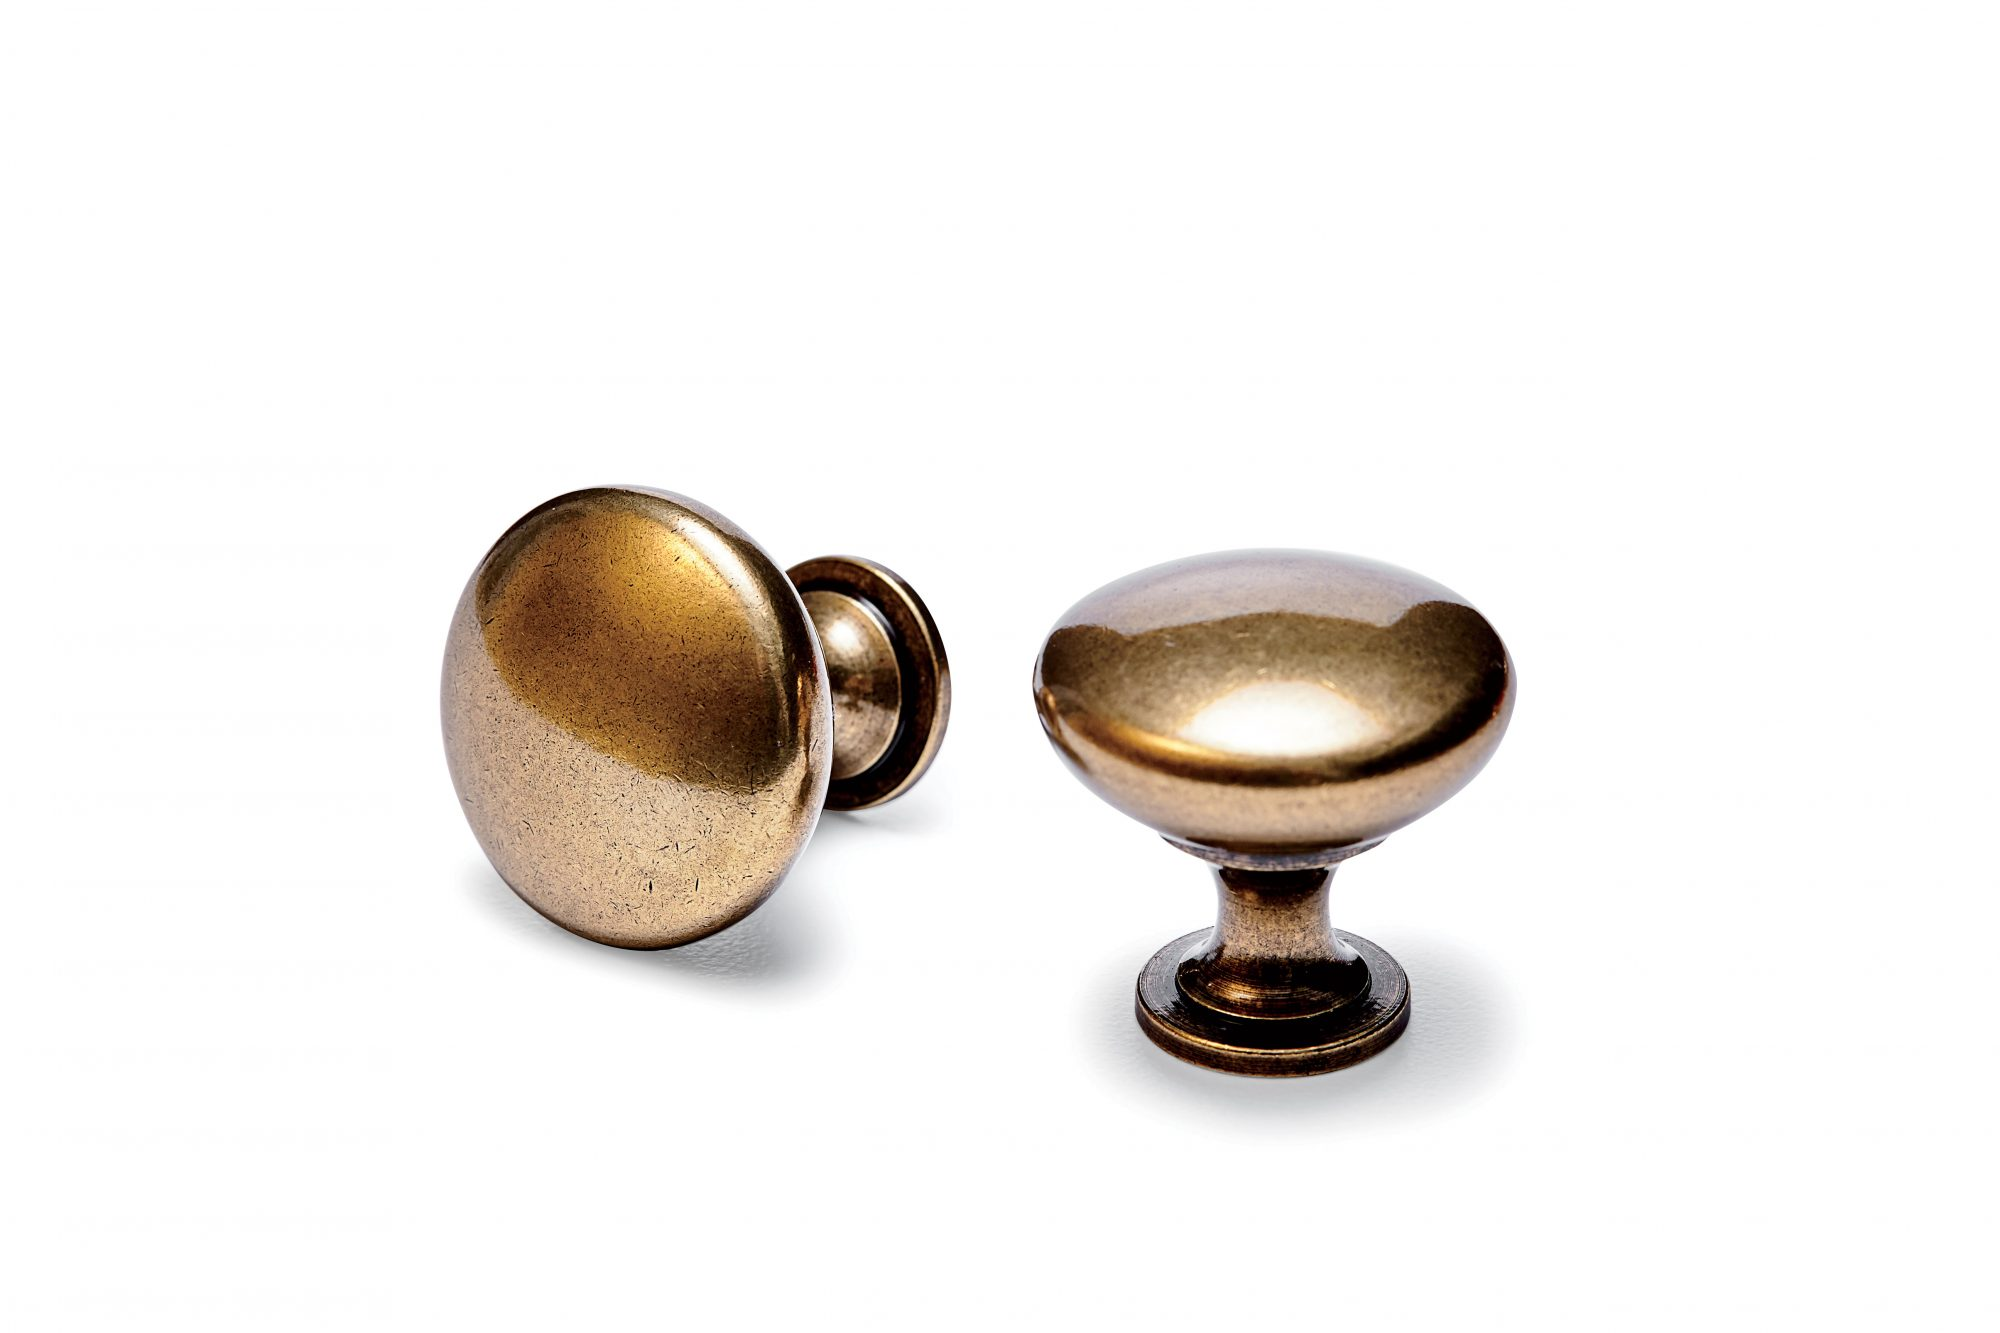 Allison Mushroom Knob in Burnished Brass